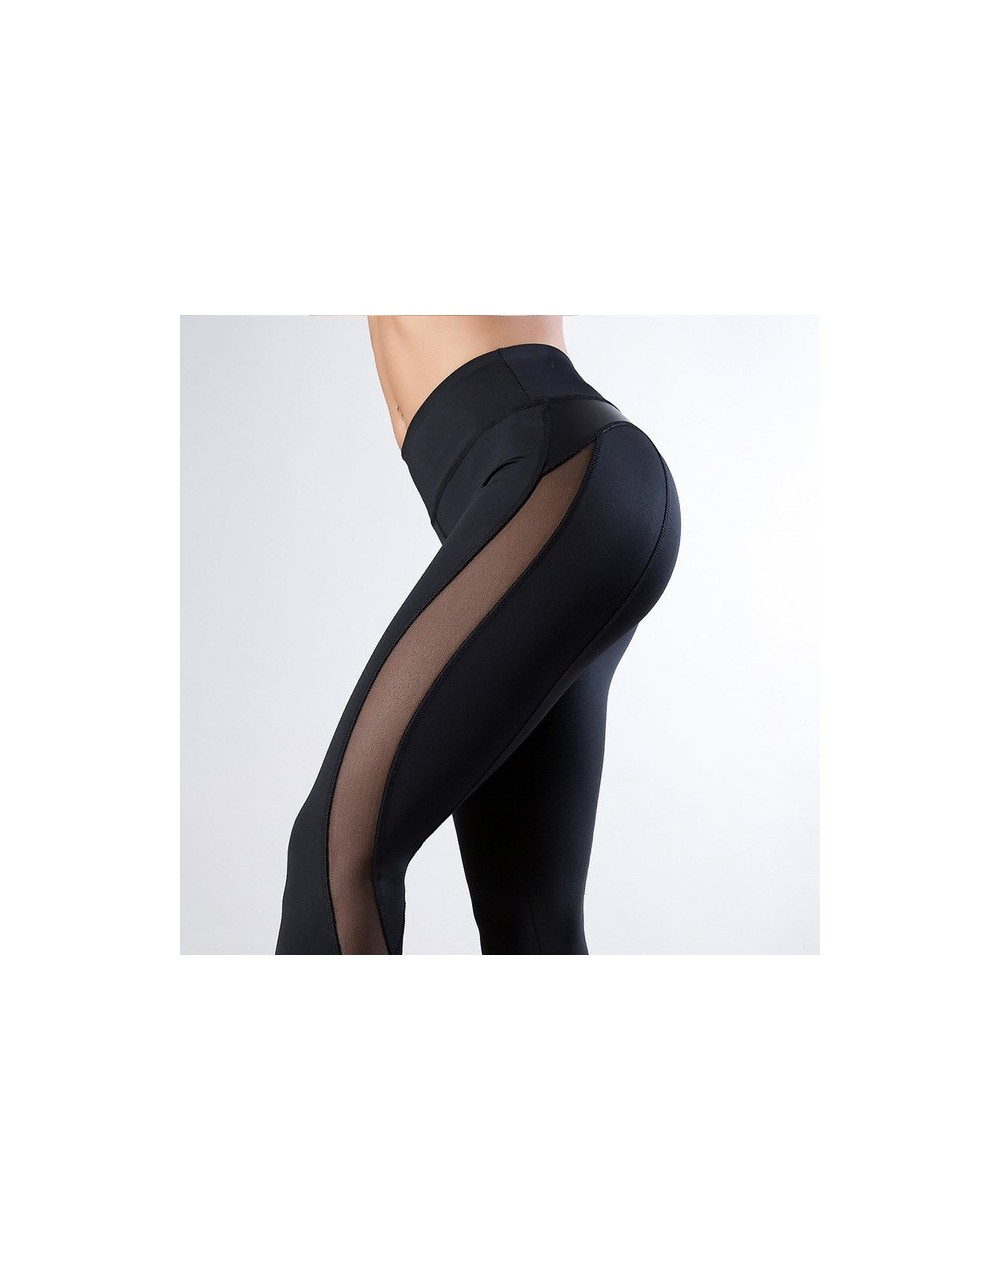 New Fashion Women Sexy Mesh Pants PU Faux Leather Leggings Casual Fitness Sporting Leggings Workout Solid Black Leggings Muj...